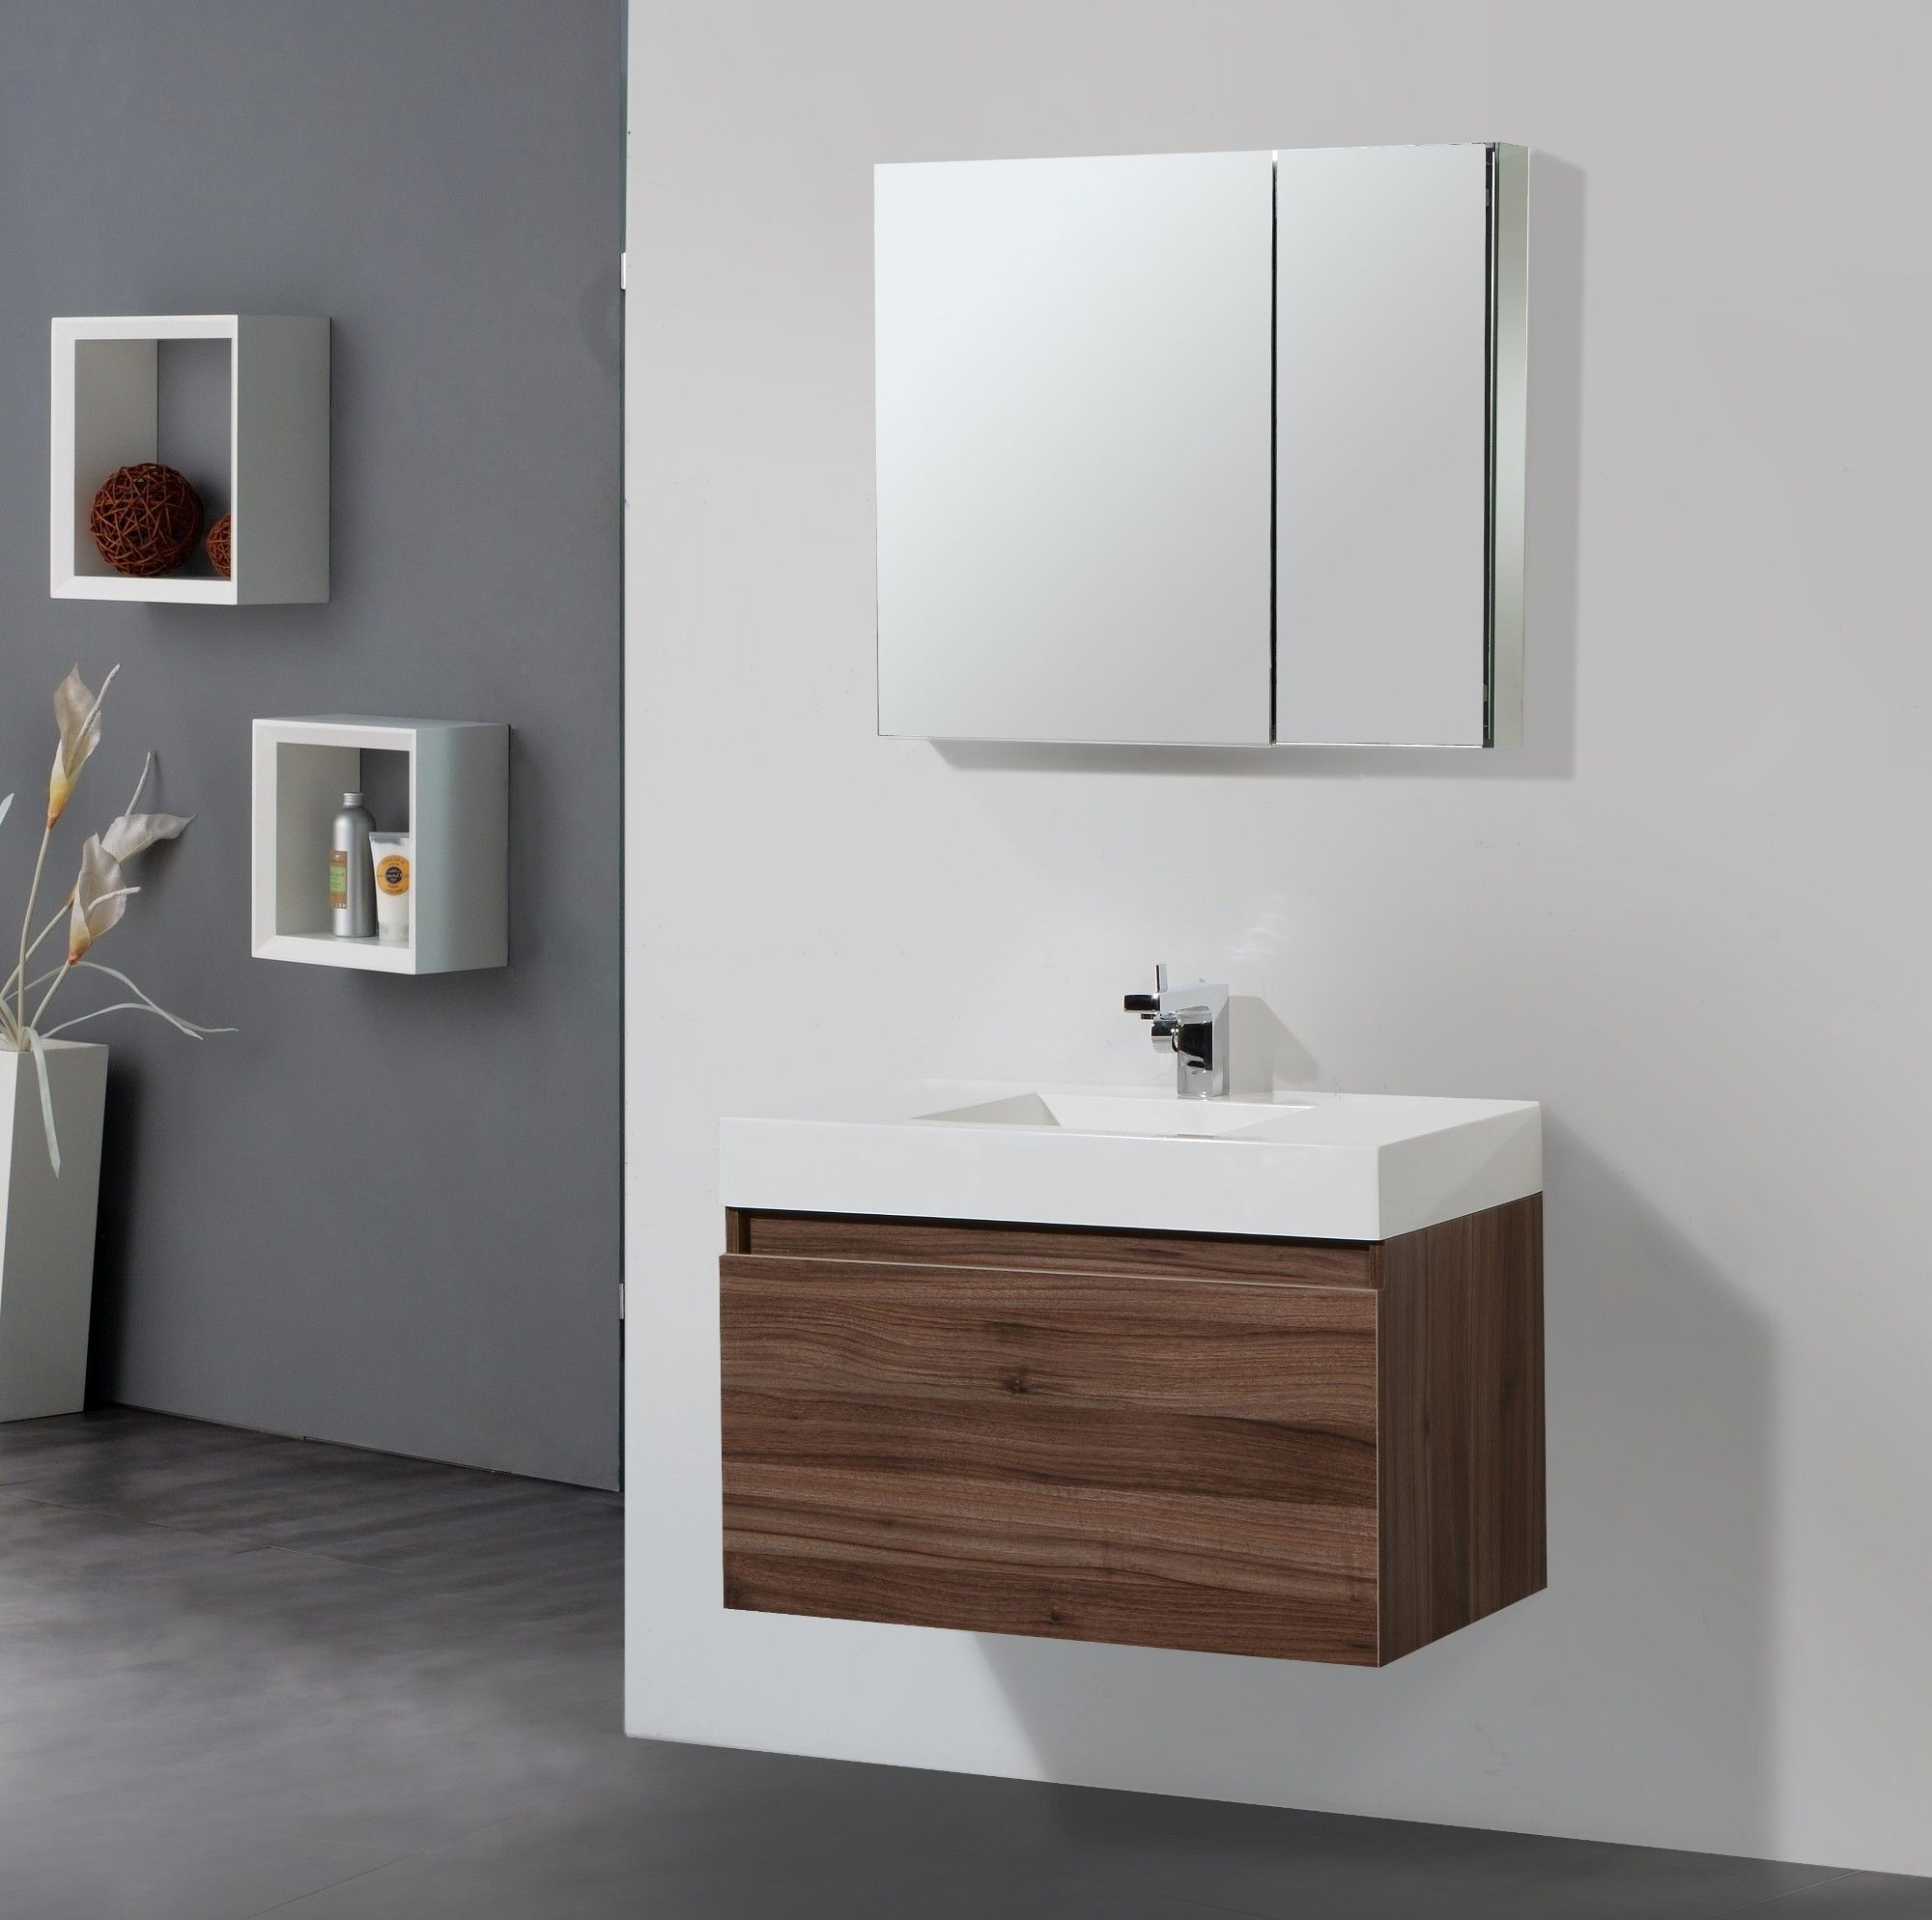 Solid wood bathroom vanities and modern floating brown for Bathroom vanity decor pinterest